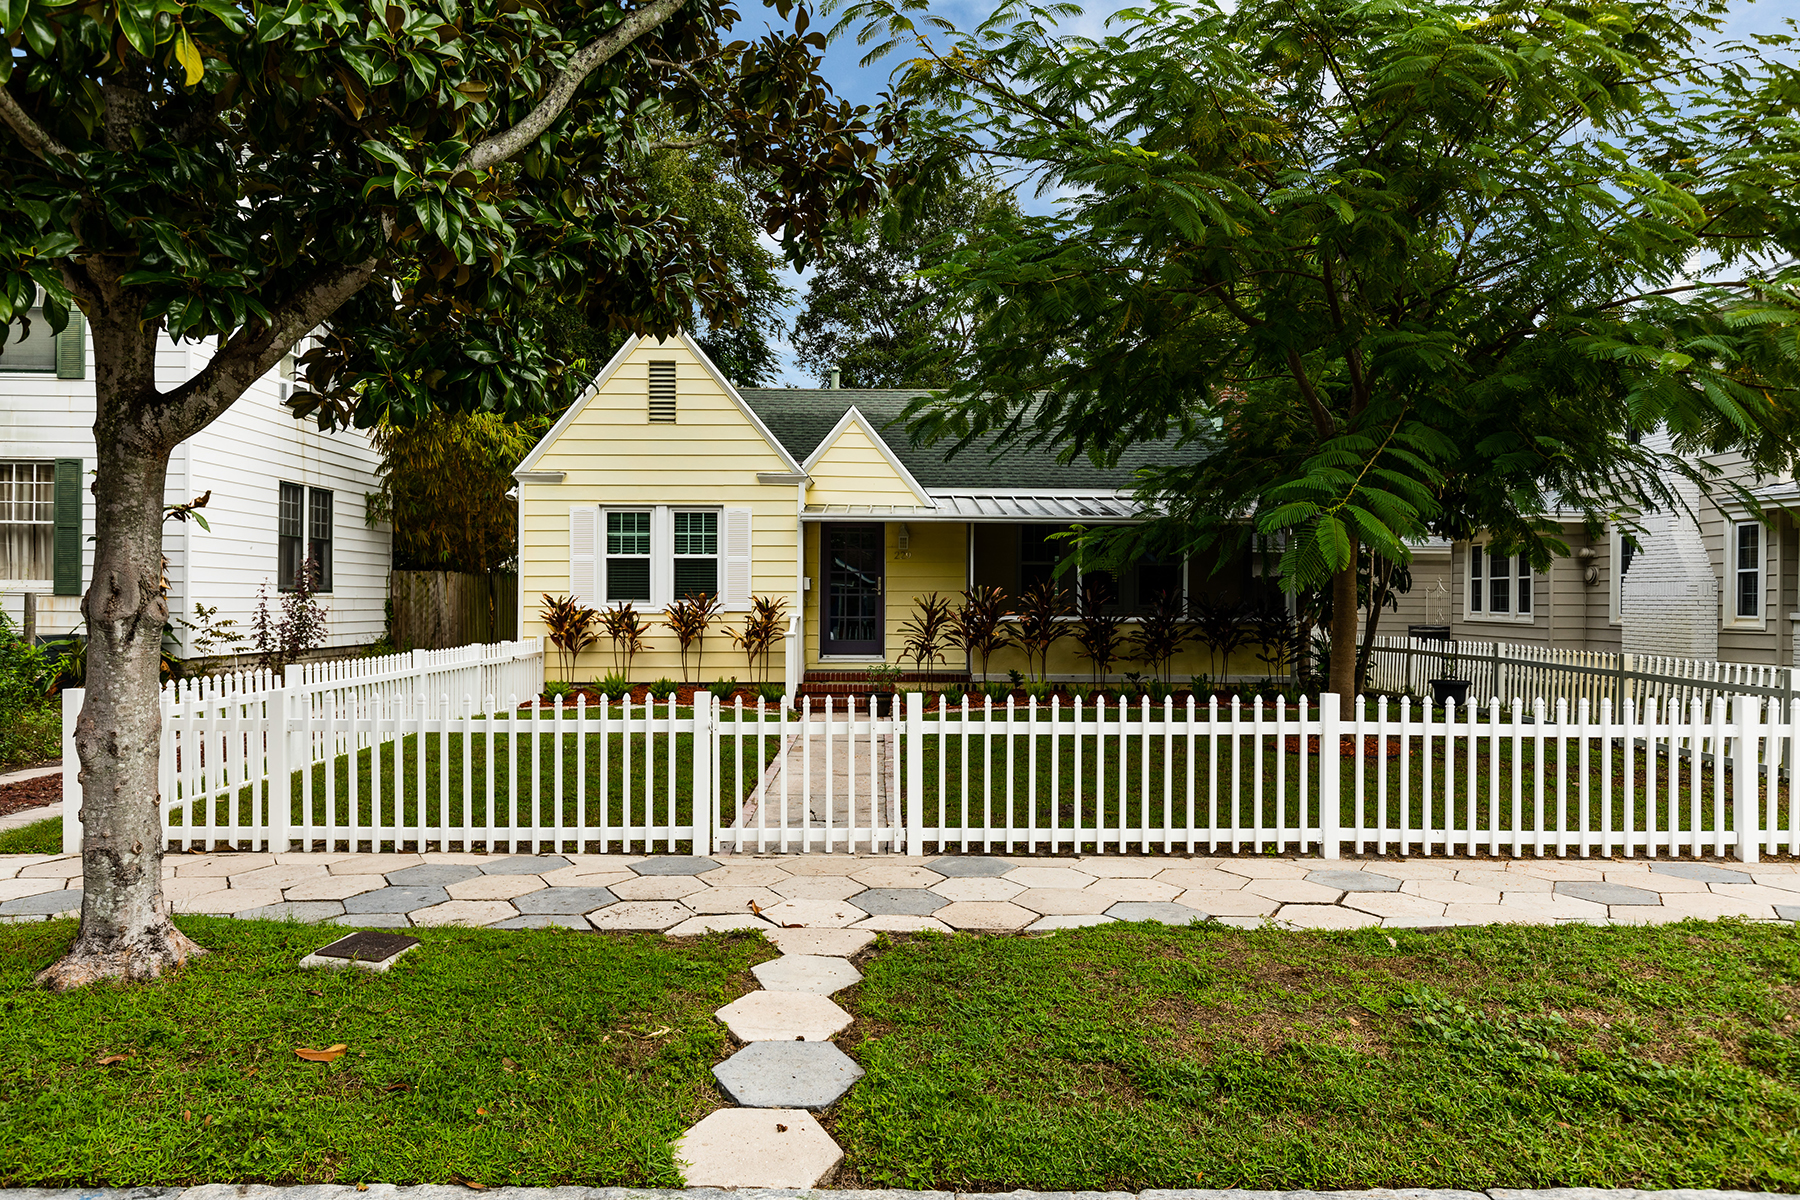 Single Family Homes for Sale at 229 21st Ave N St. Petersburg, Florida 33704 United States